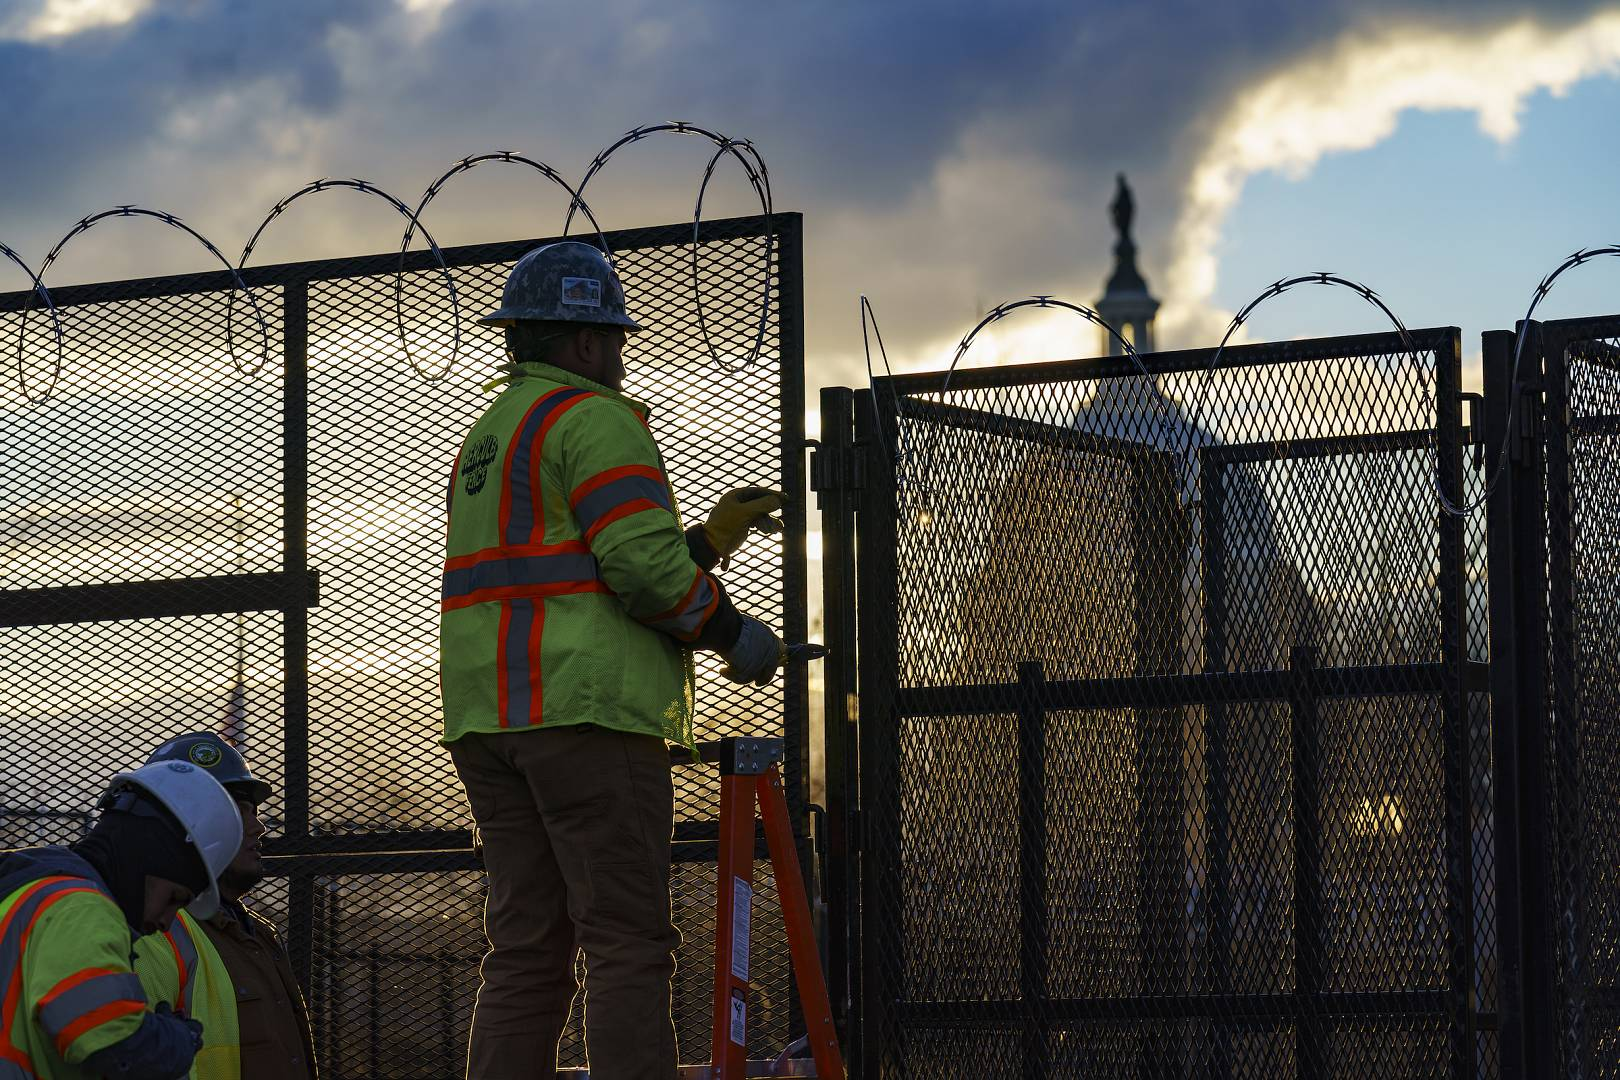 Workers install razor wire atop of fencing around the U.S. Capitol perimeter at sunset, in Washington. January 18, 2021